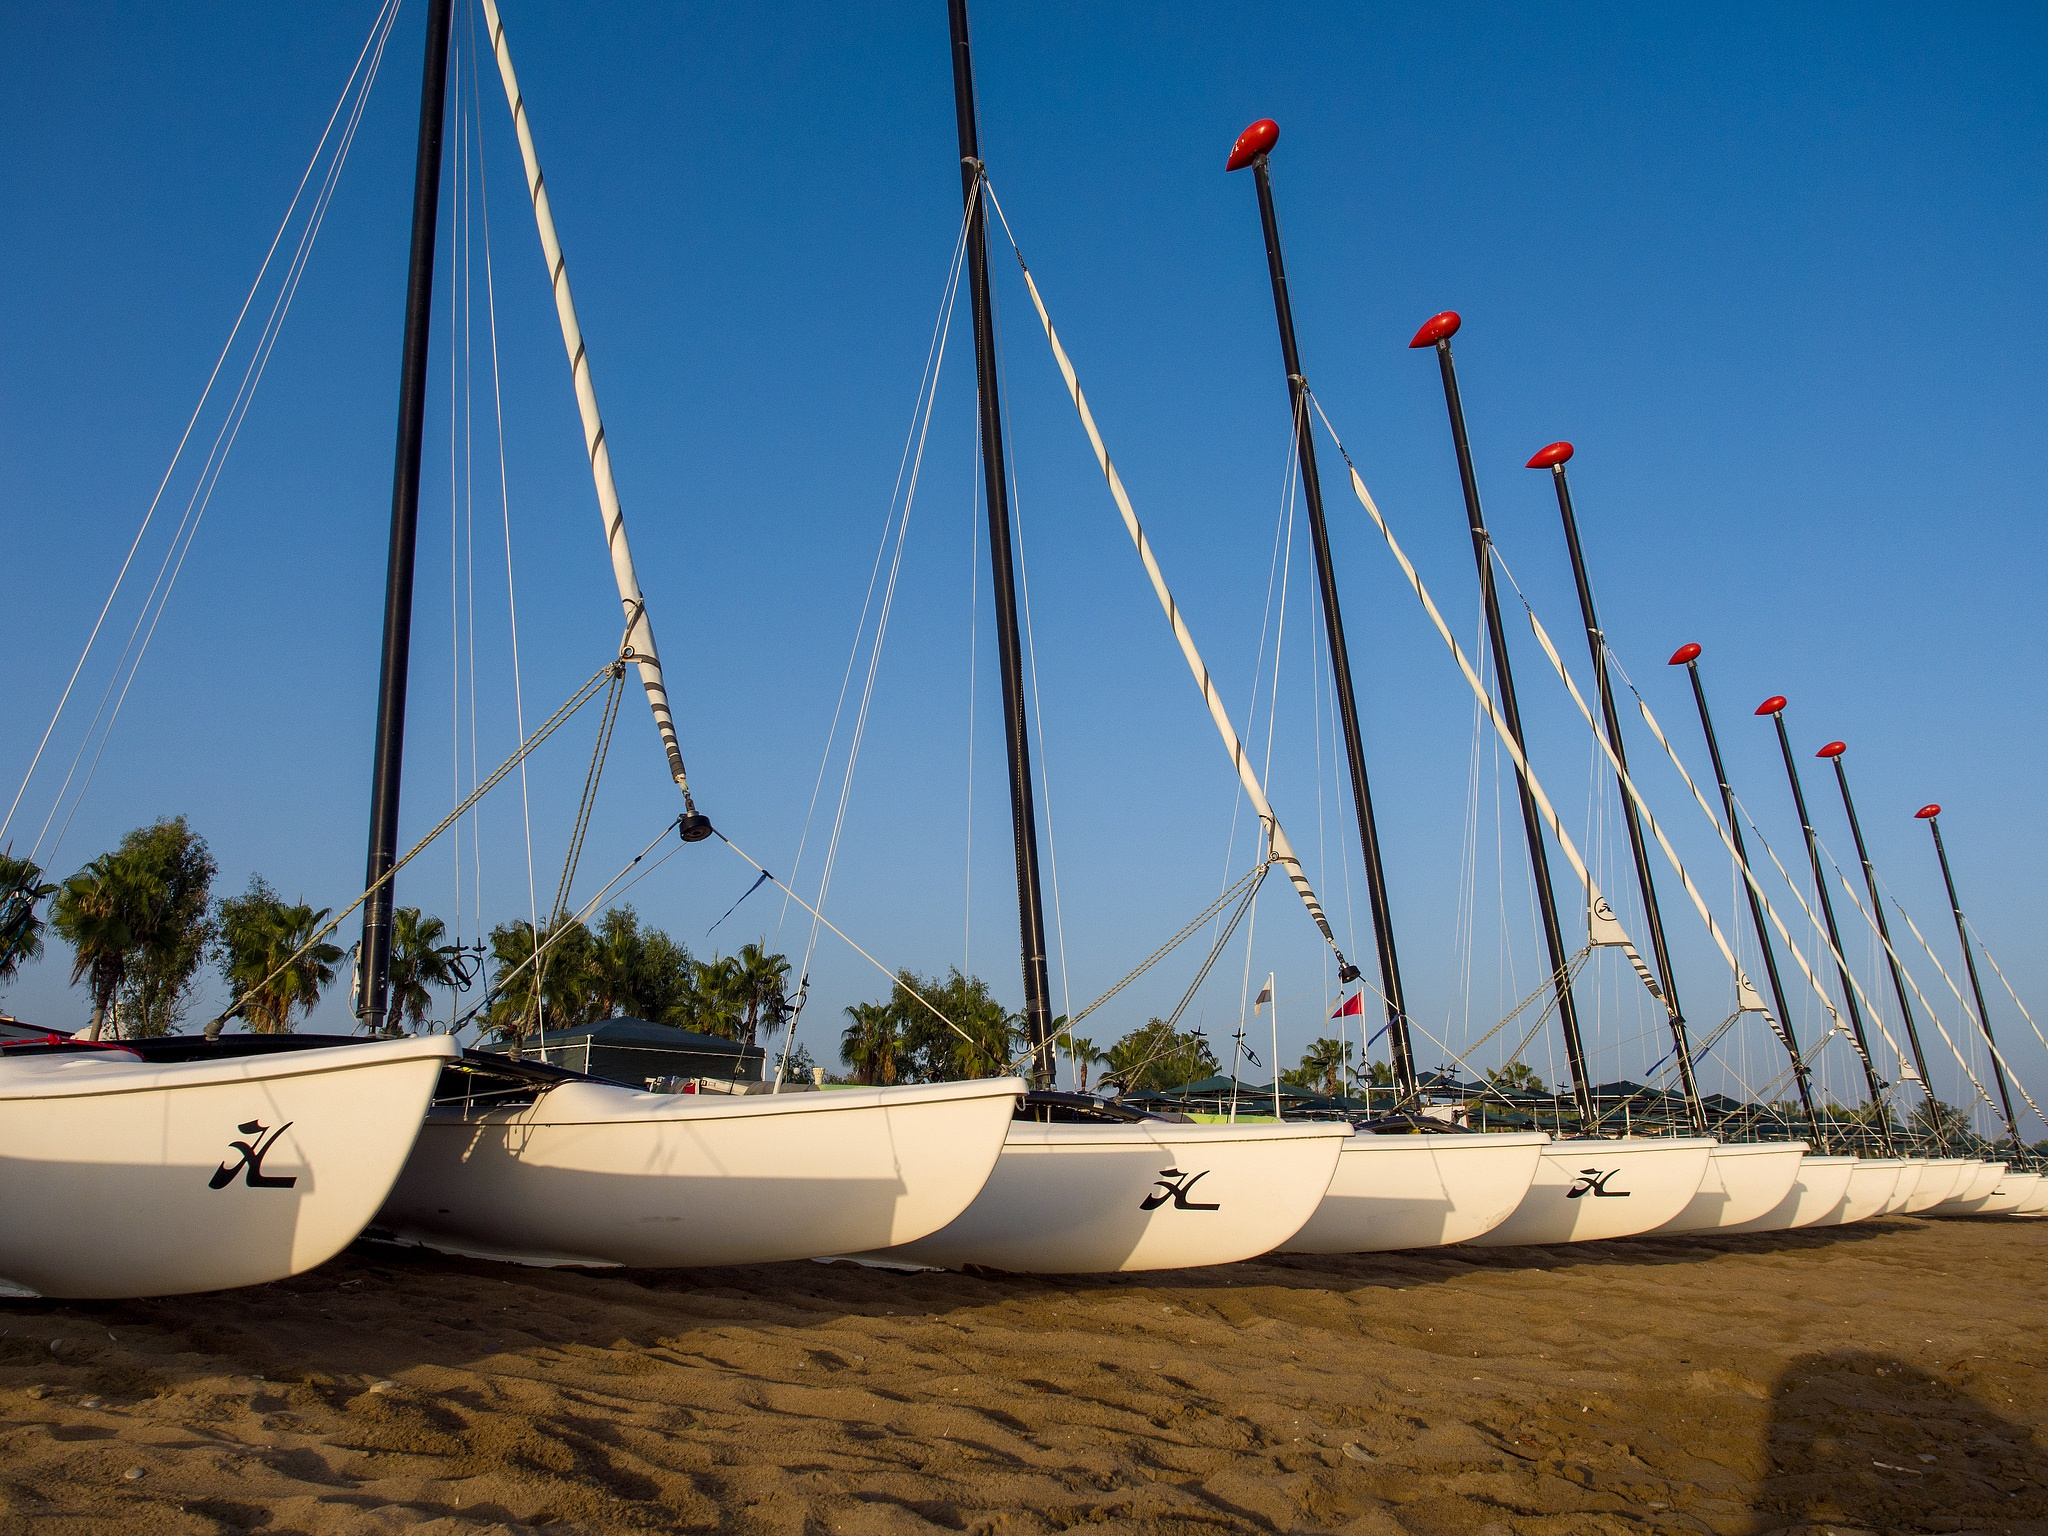 Boats on a beach by DVPavlov